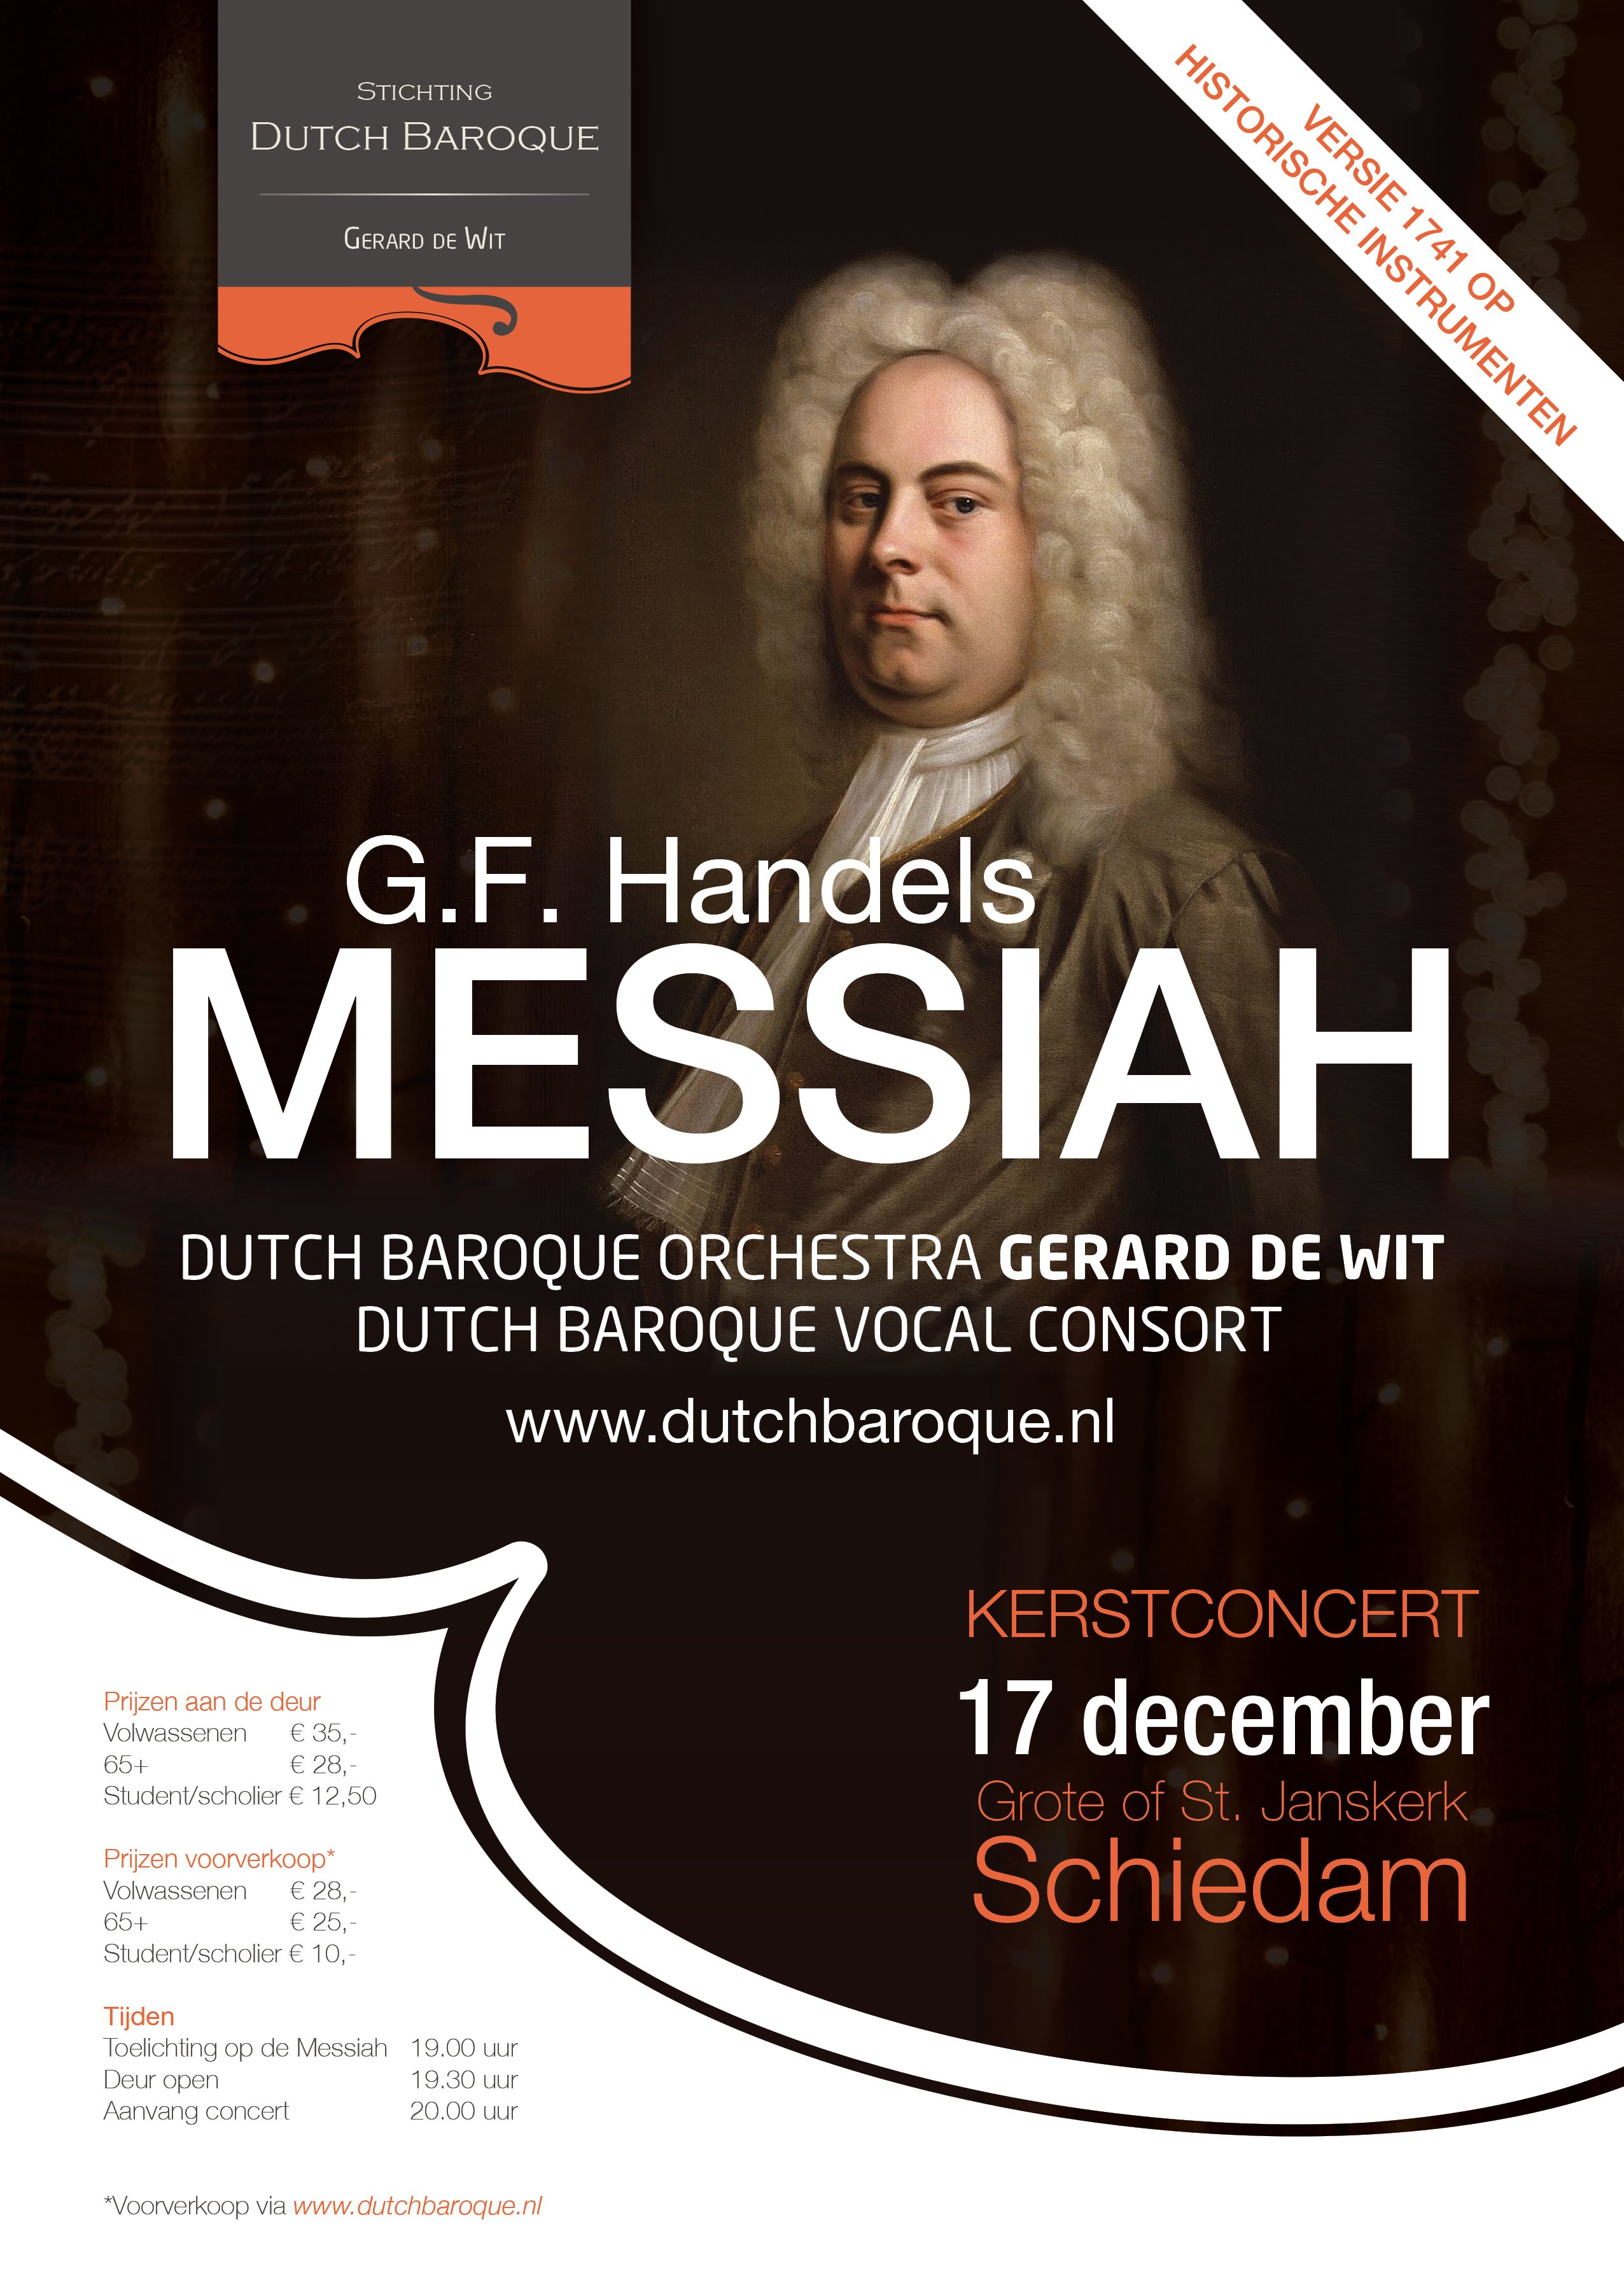 DB_Messiah2016_Flyer-Poster_5